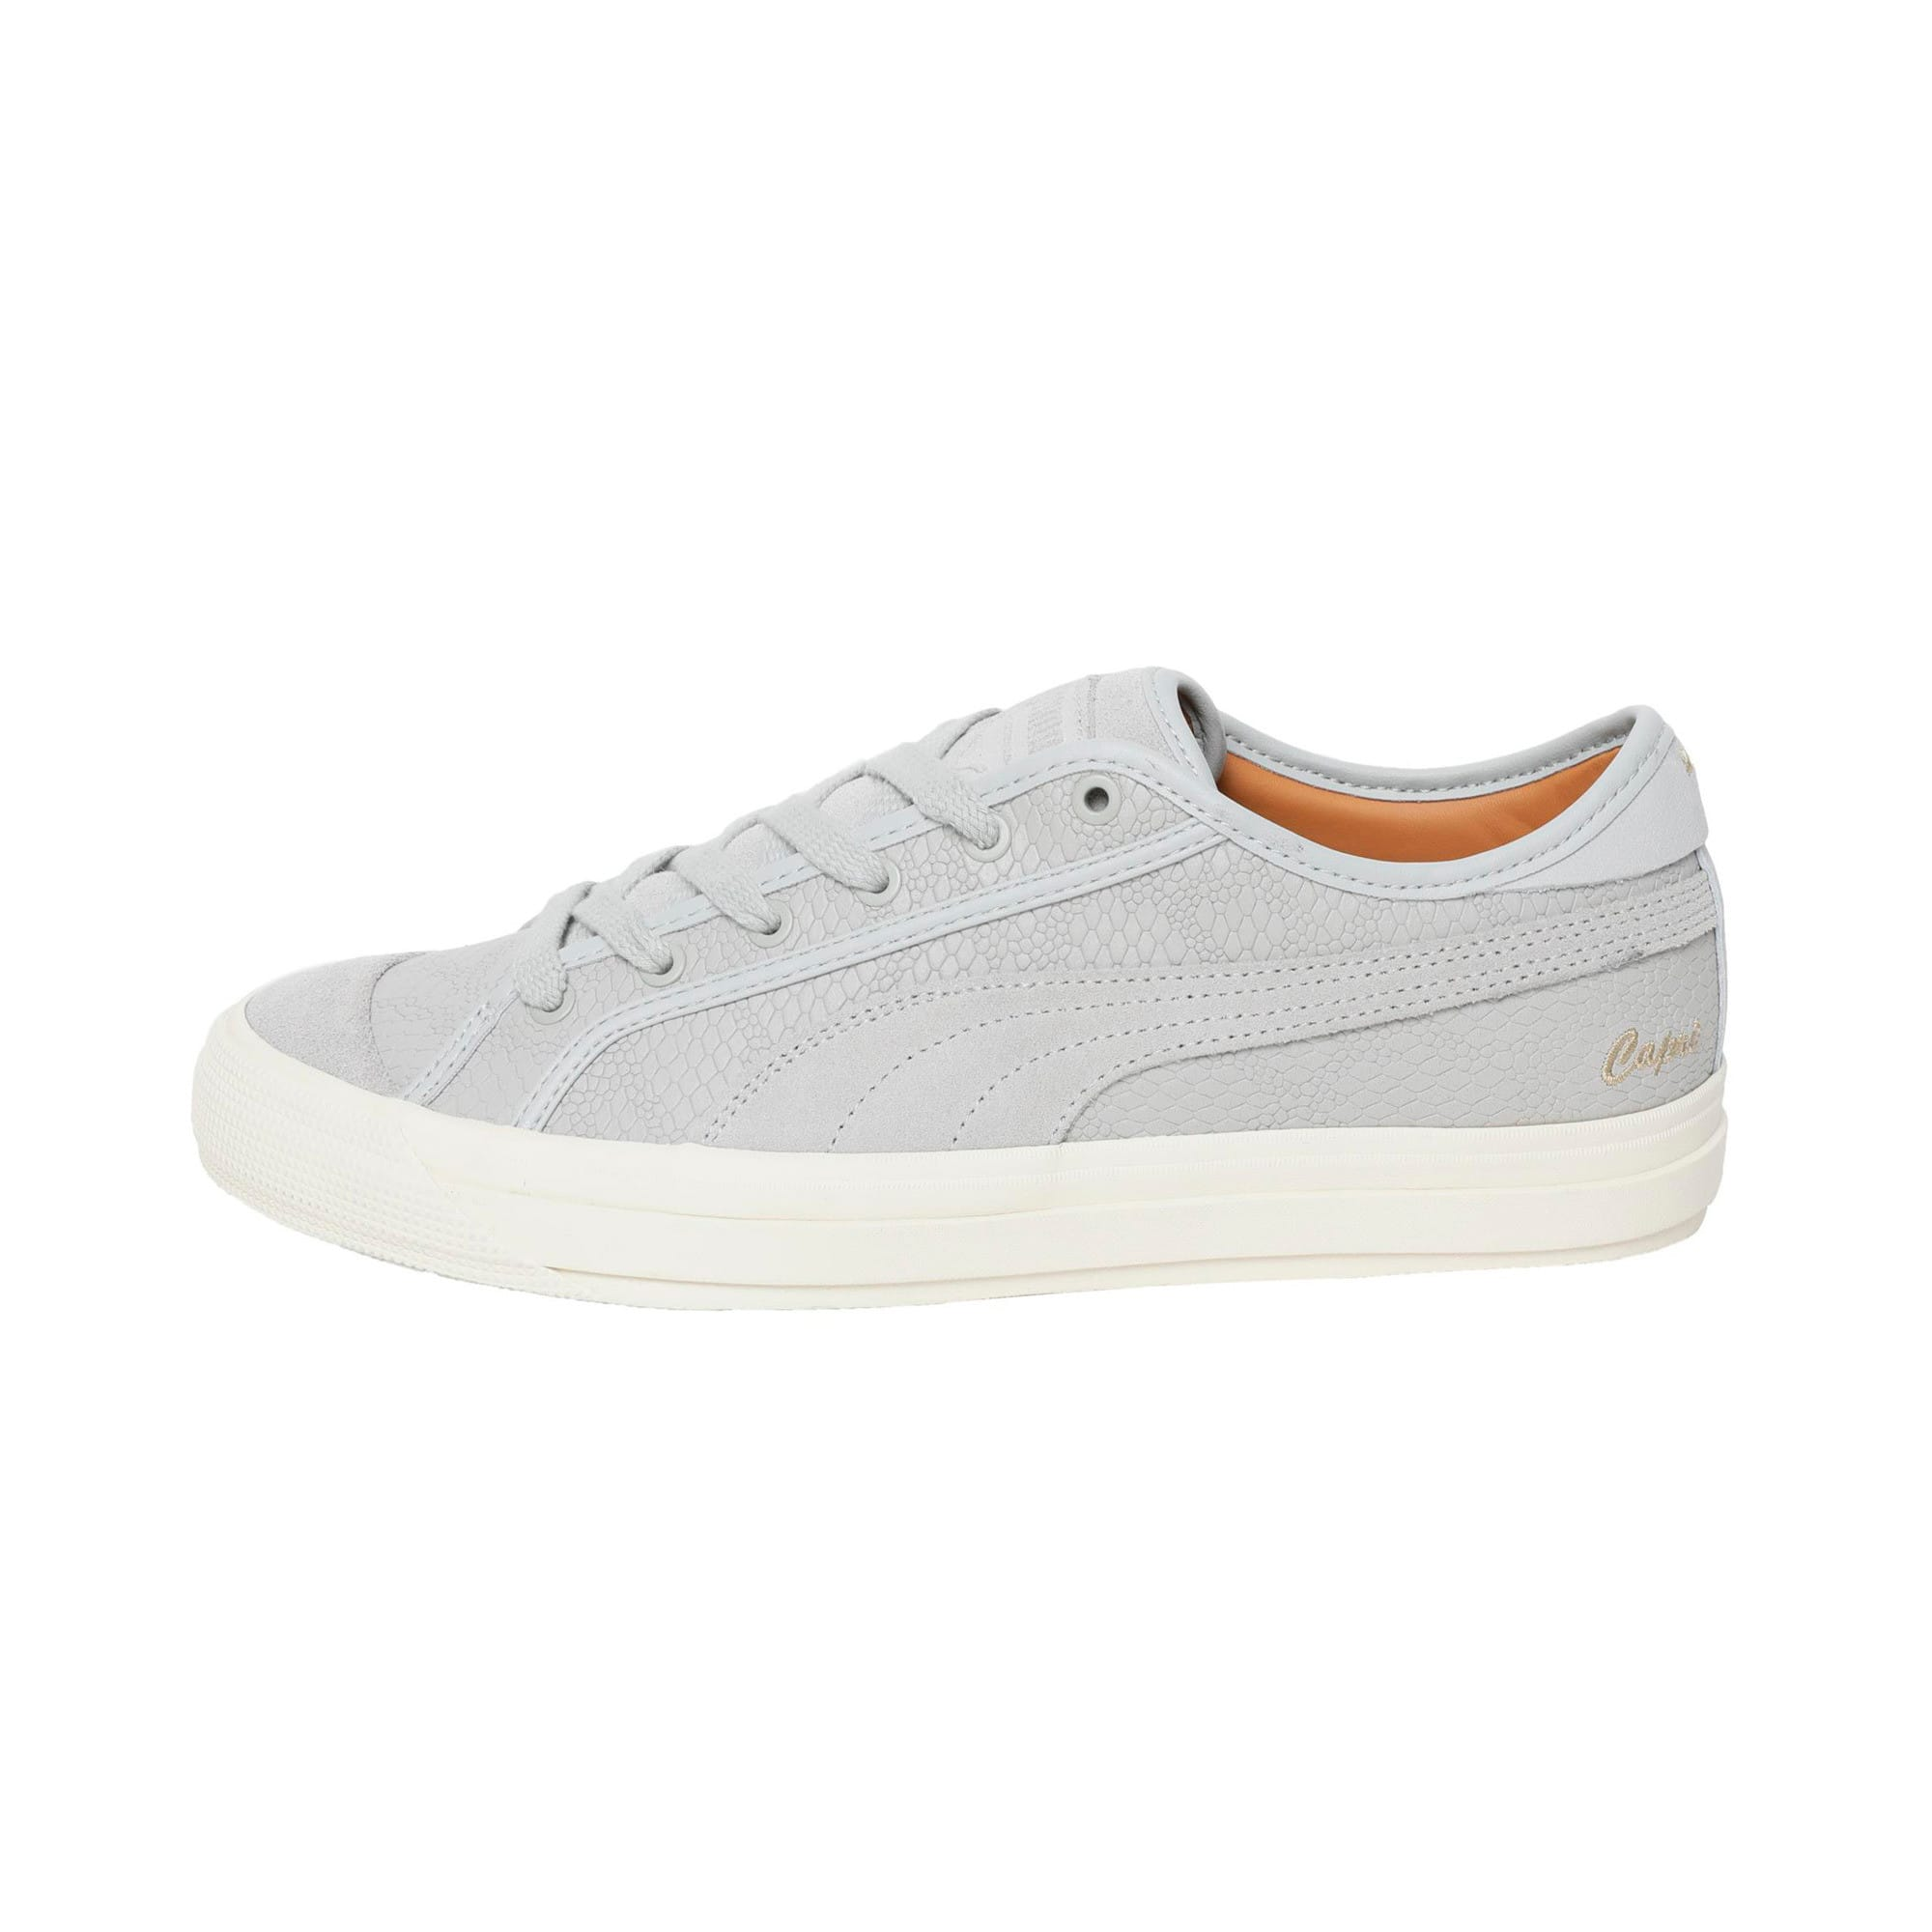 Thumbnail 1 of Capri Sneakers, GryViolt-GryViolet-WhisprWht, medium-IND